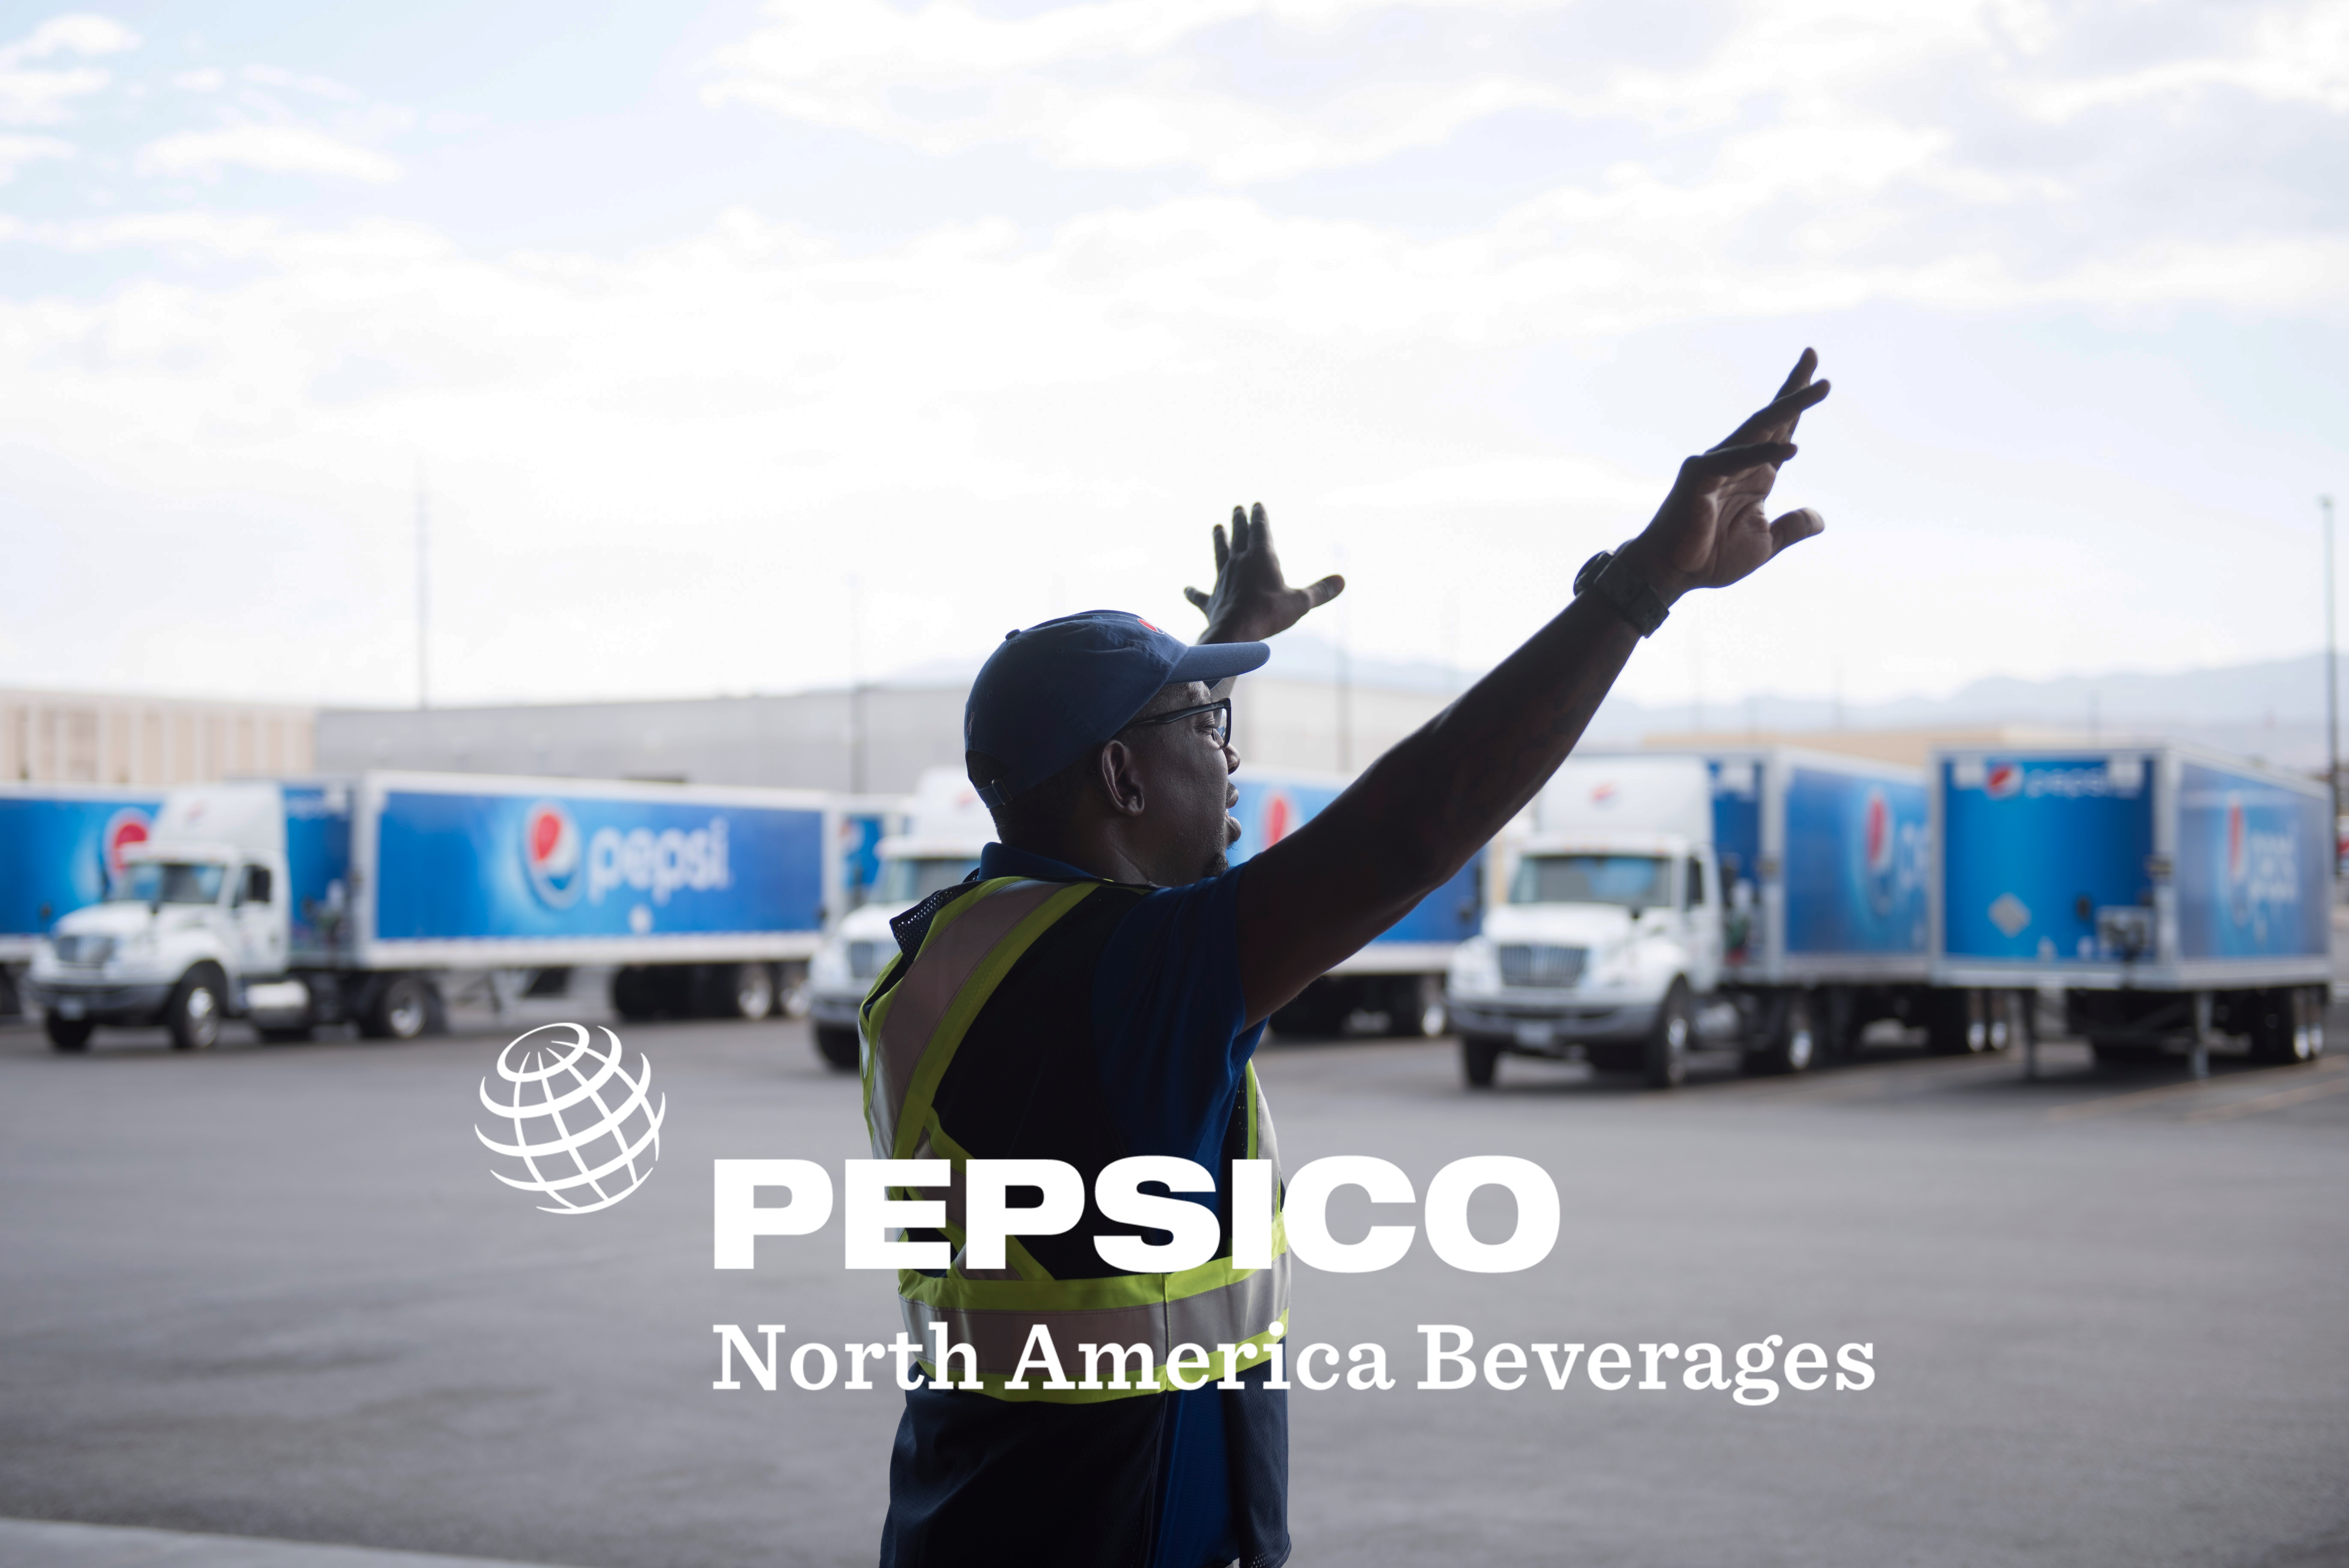 PepsiCo_Moments of Choice Video Thumbnail